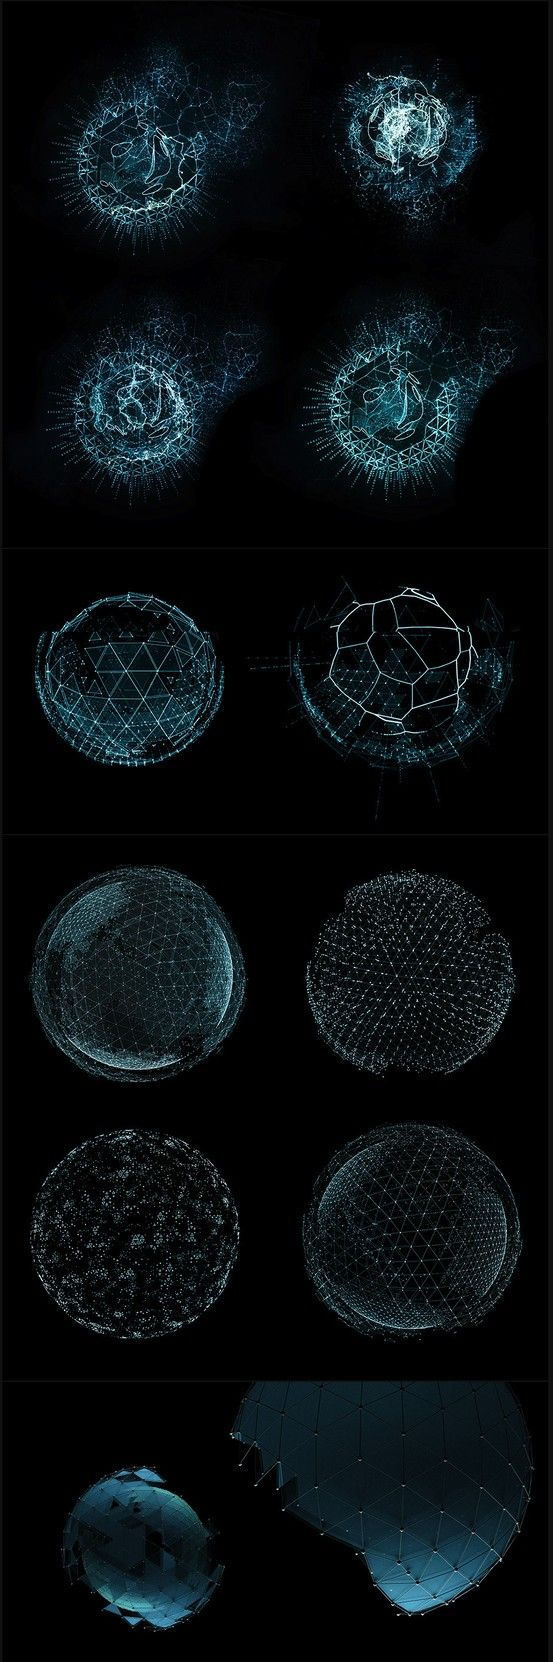 Awesome!/ Stuff/ Blue/ Interface/ Design/ Creative/ Fun/ Cool/ Neat/ Super/ Captivating/Graphics/ -#TRON #sphere #GMUNK